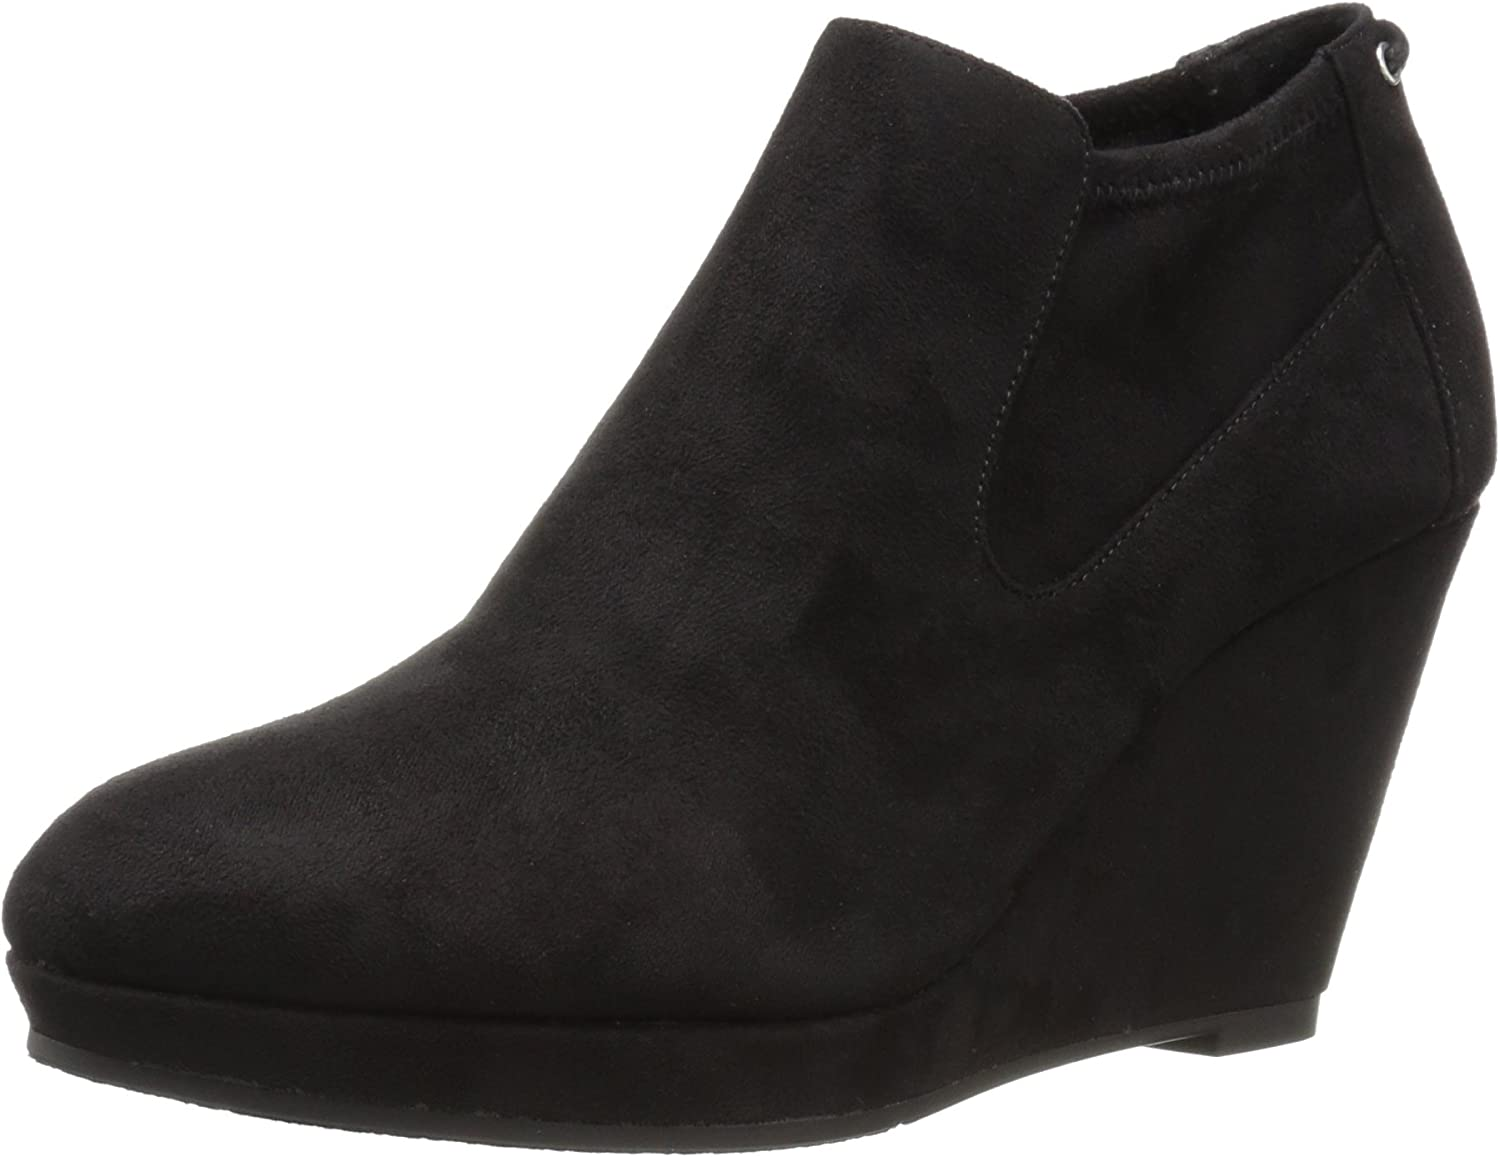 CL by Chinese Laundry Women's Varina Ankle Bootie